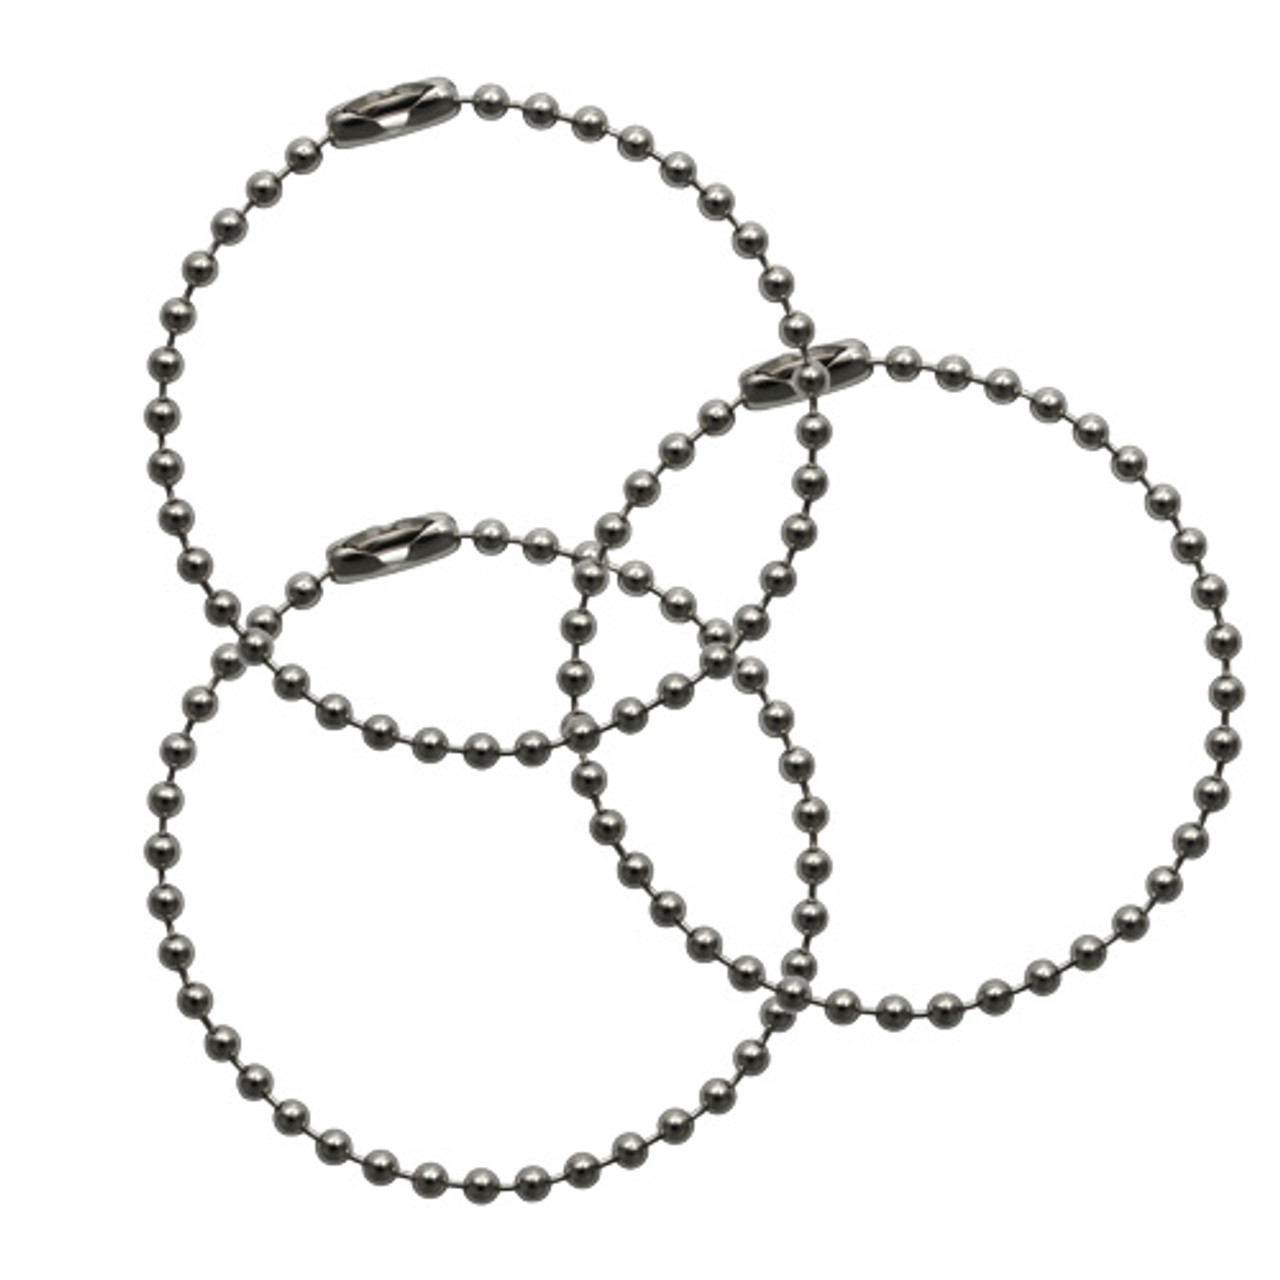 #3 (2.4mm diameter) 4.5 inch stainless steel ball chain keychains. The chains is 2.4mm diameter. Great value when purchased in bulk at factory direct prices. No company seal.